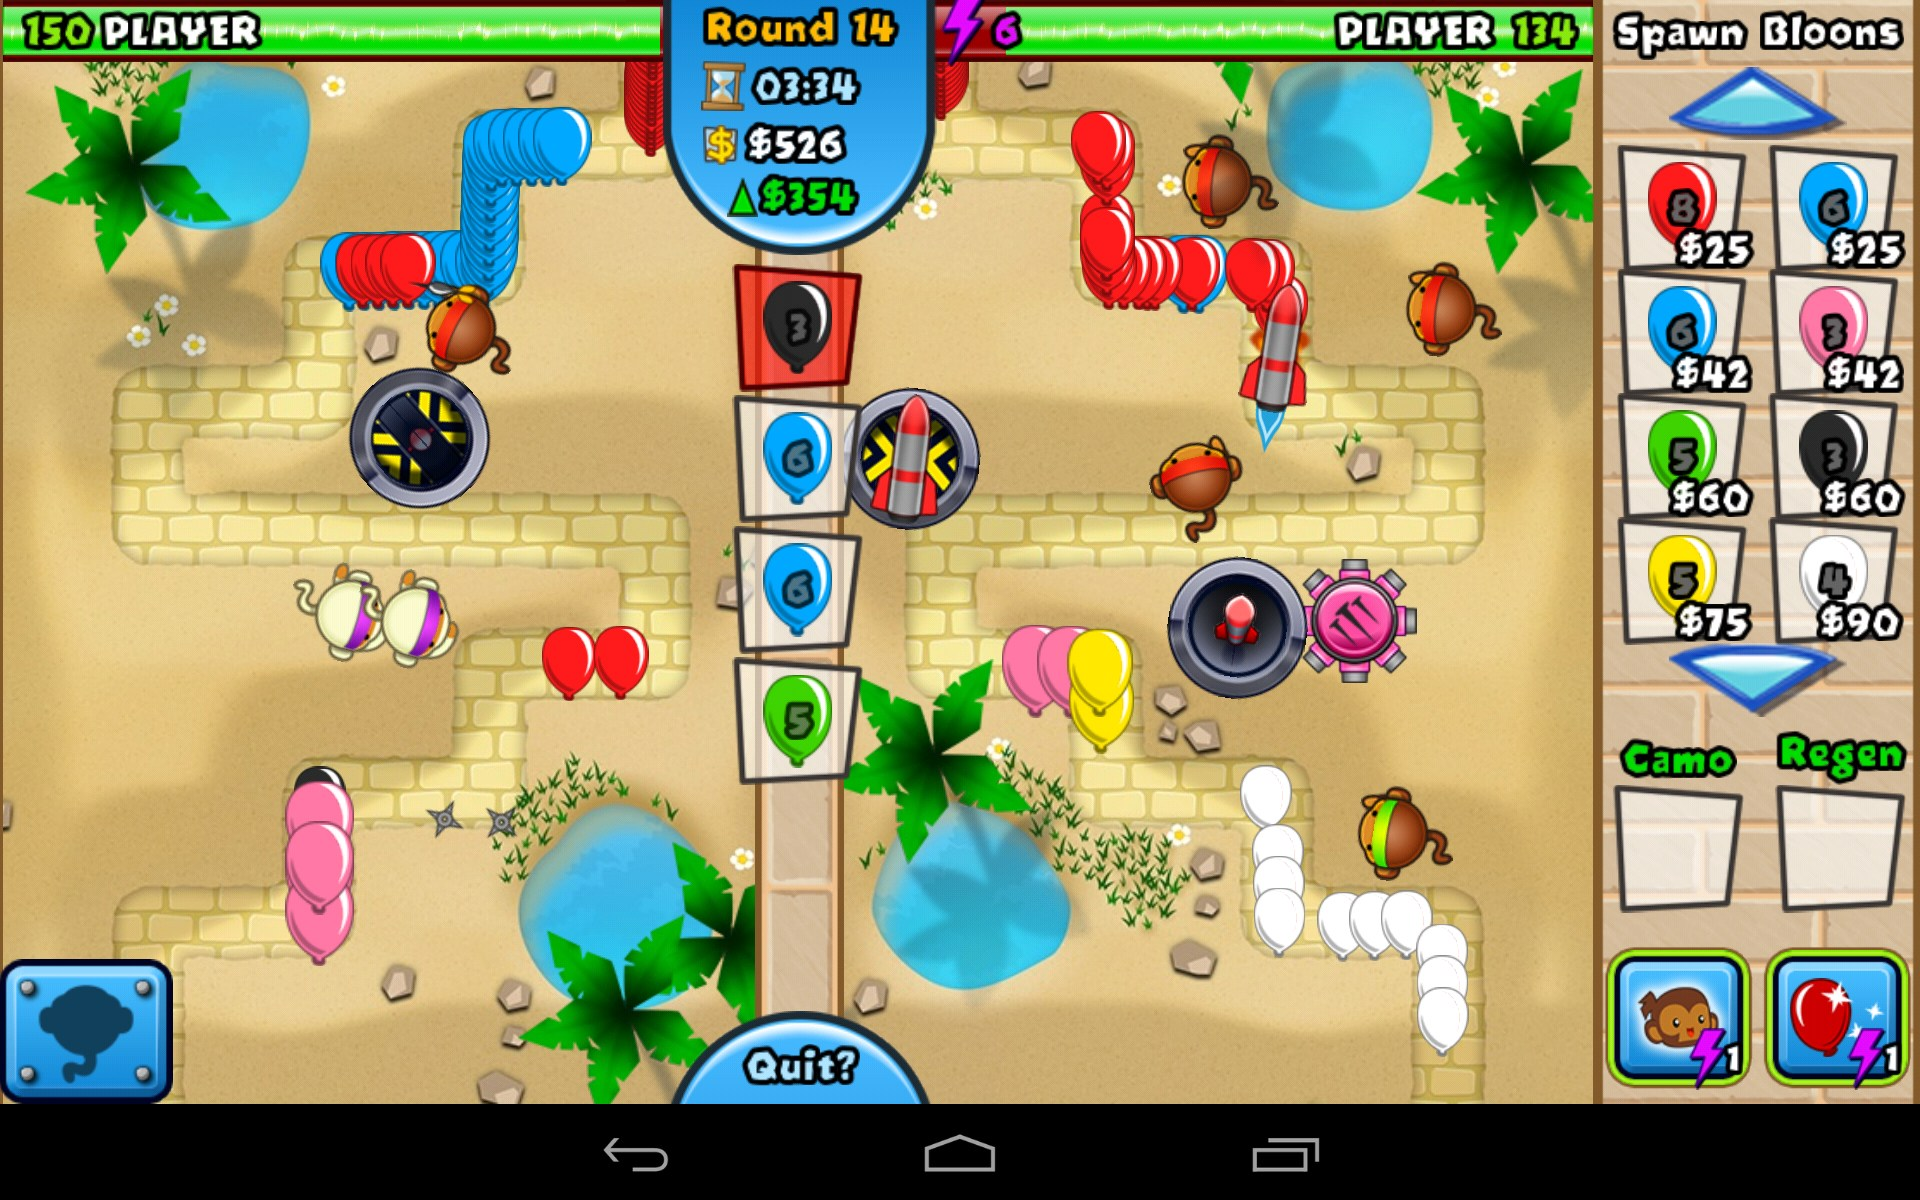 Bloons td battles for toshiba ac100 free download games for